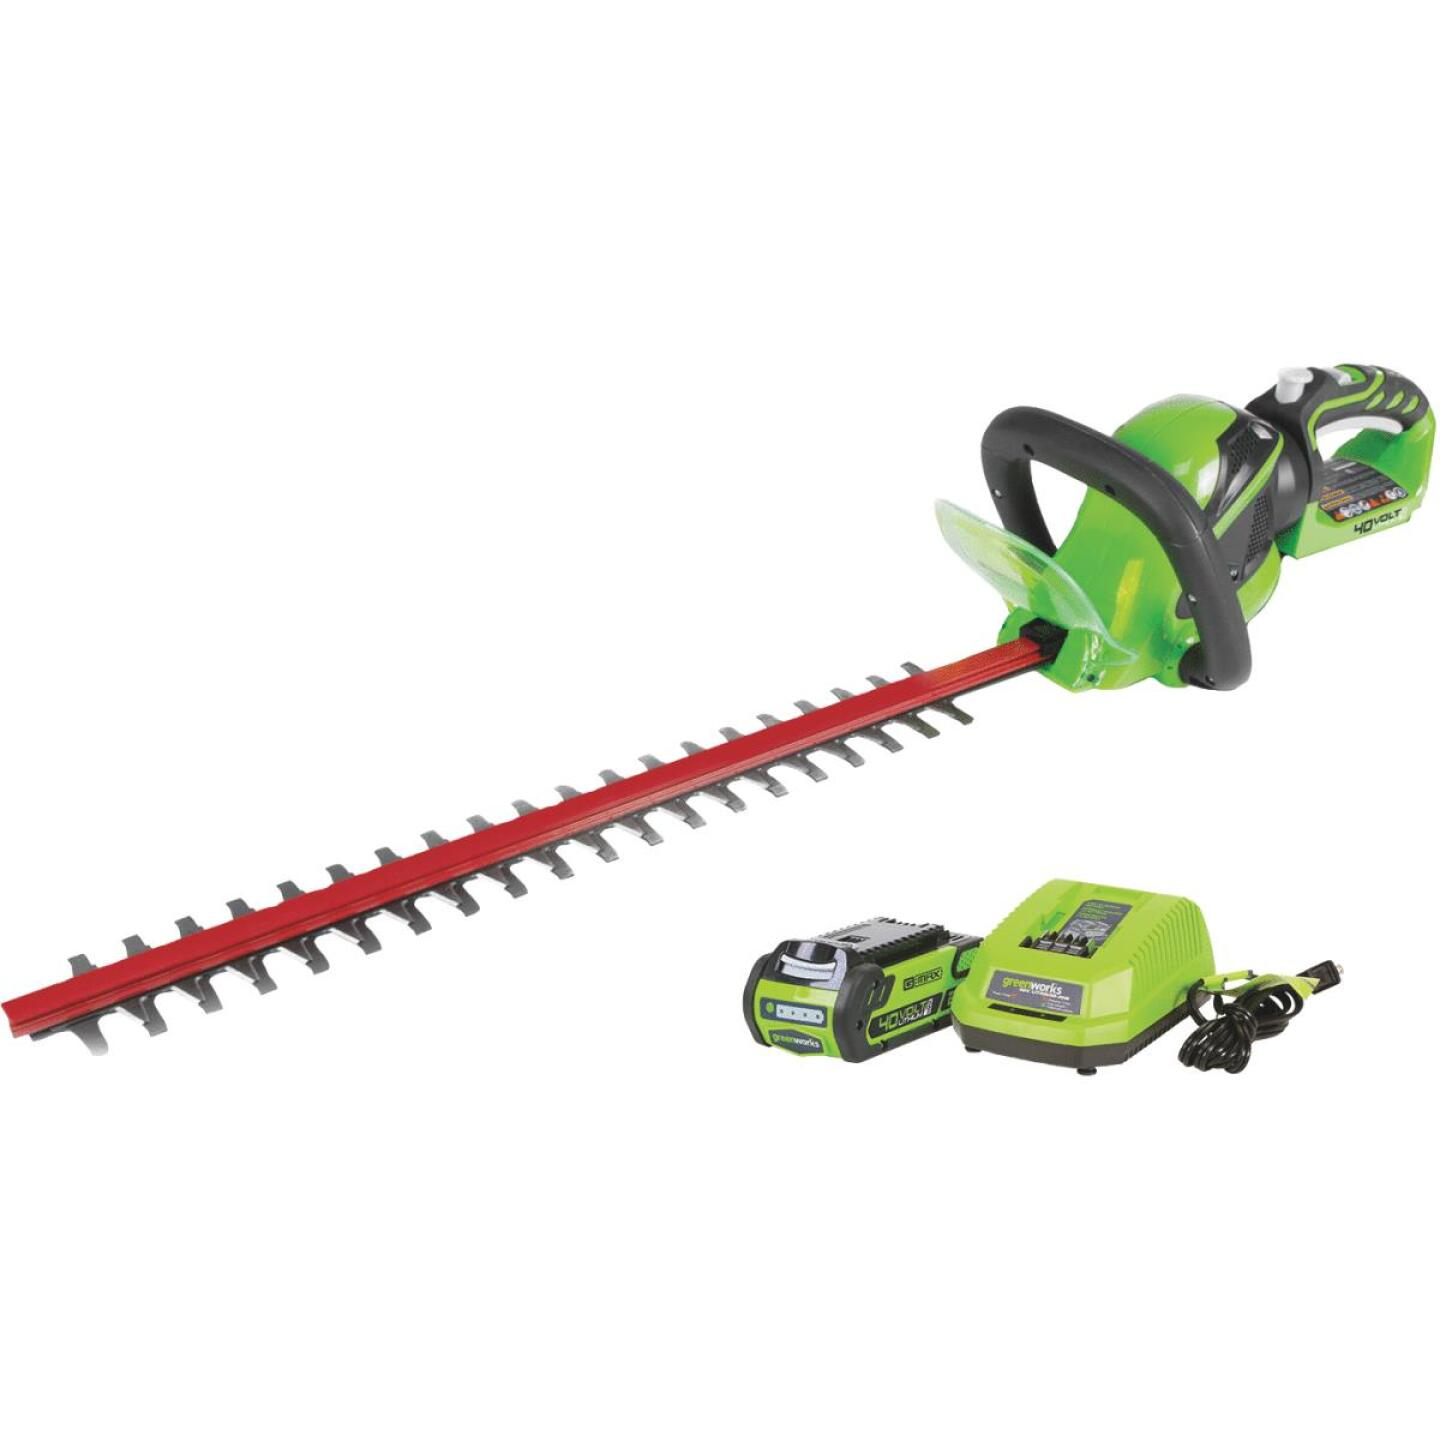 Greenworks G-Max 24 In. 40V Cordless Hedge Trimmer Image 1